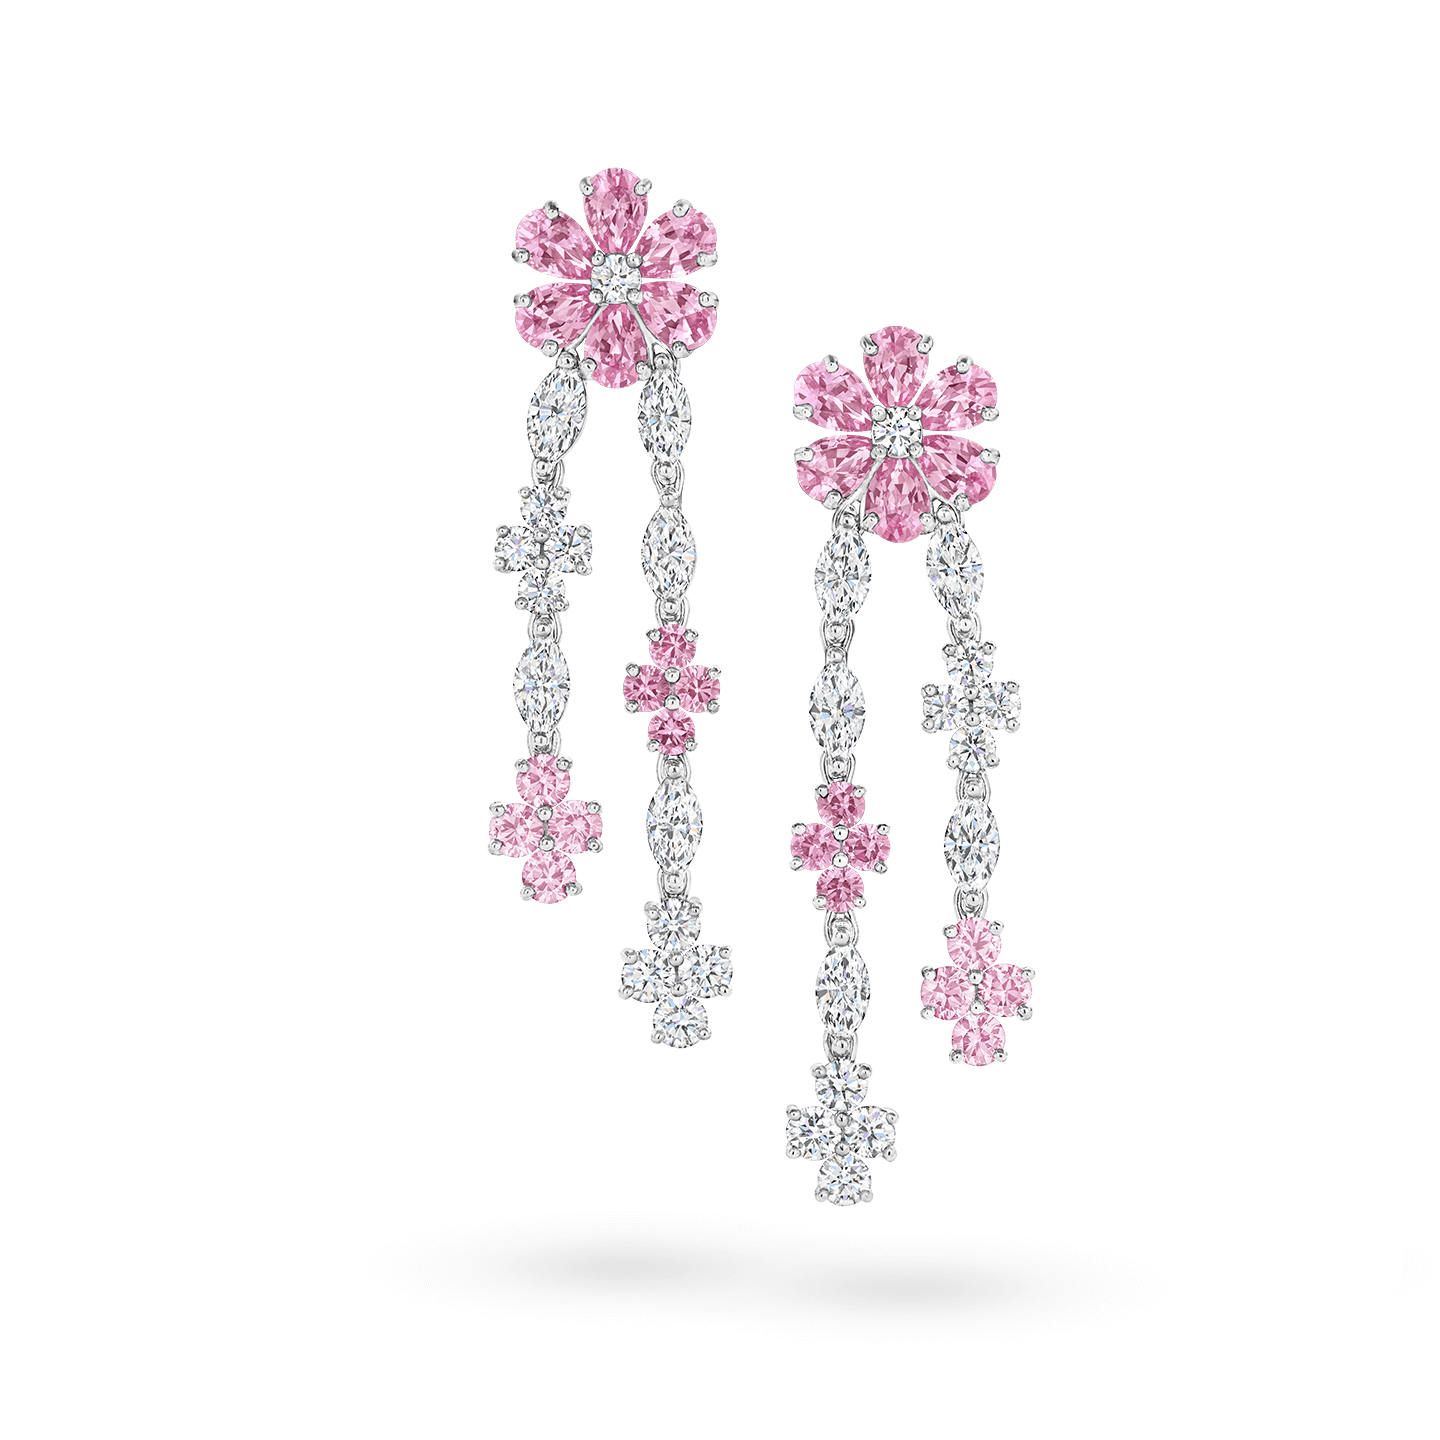 Forget-Me-Not Pink Sapphire and Diamond Drop Earrings, Product Image 1